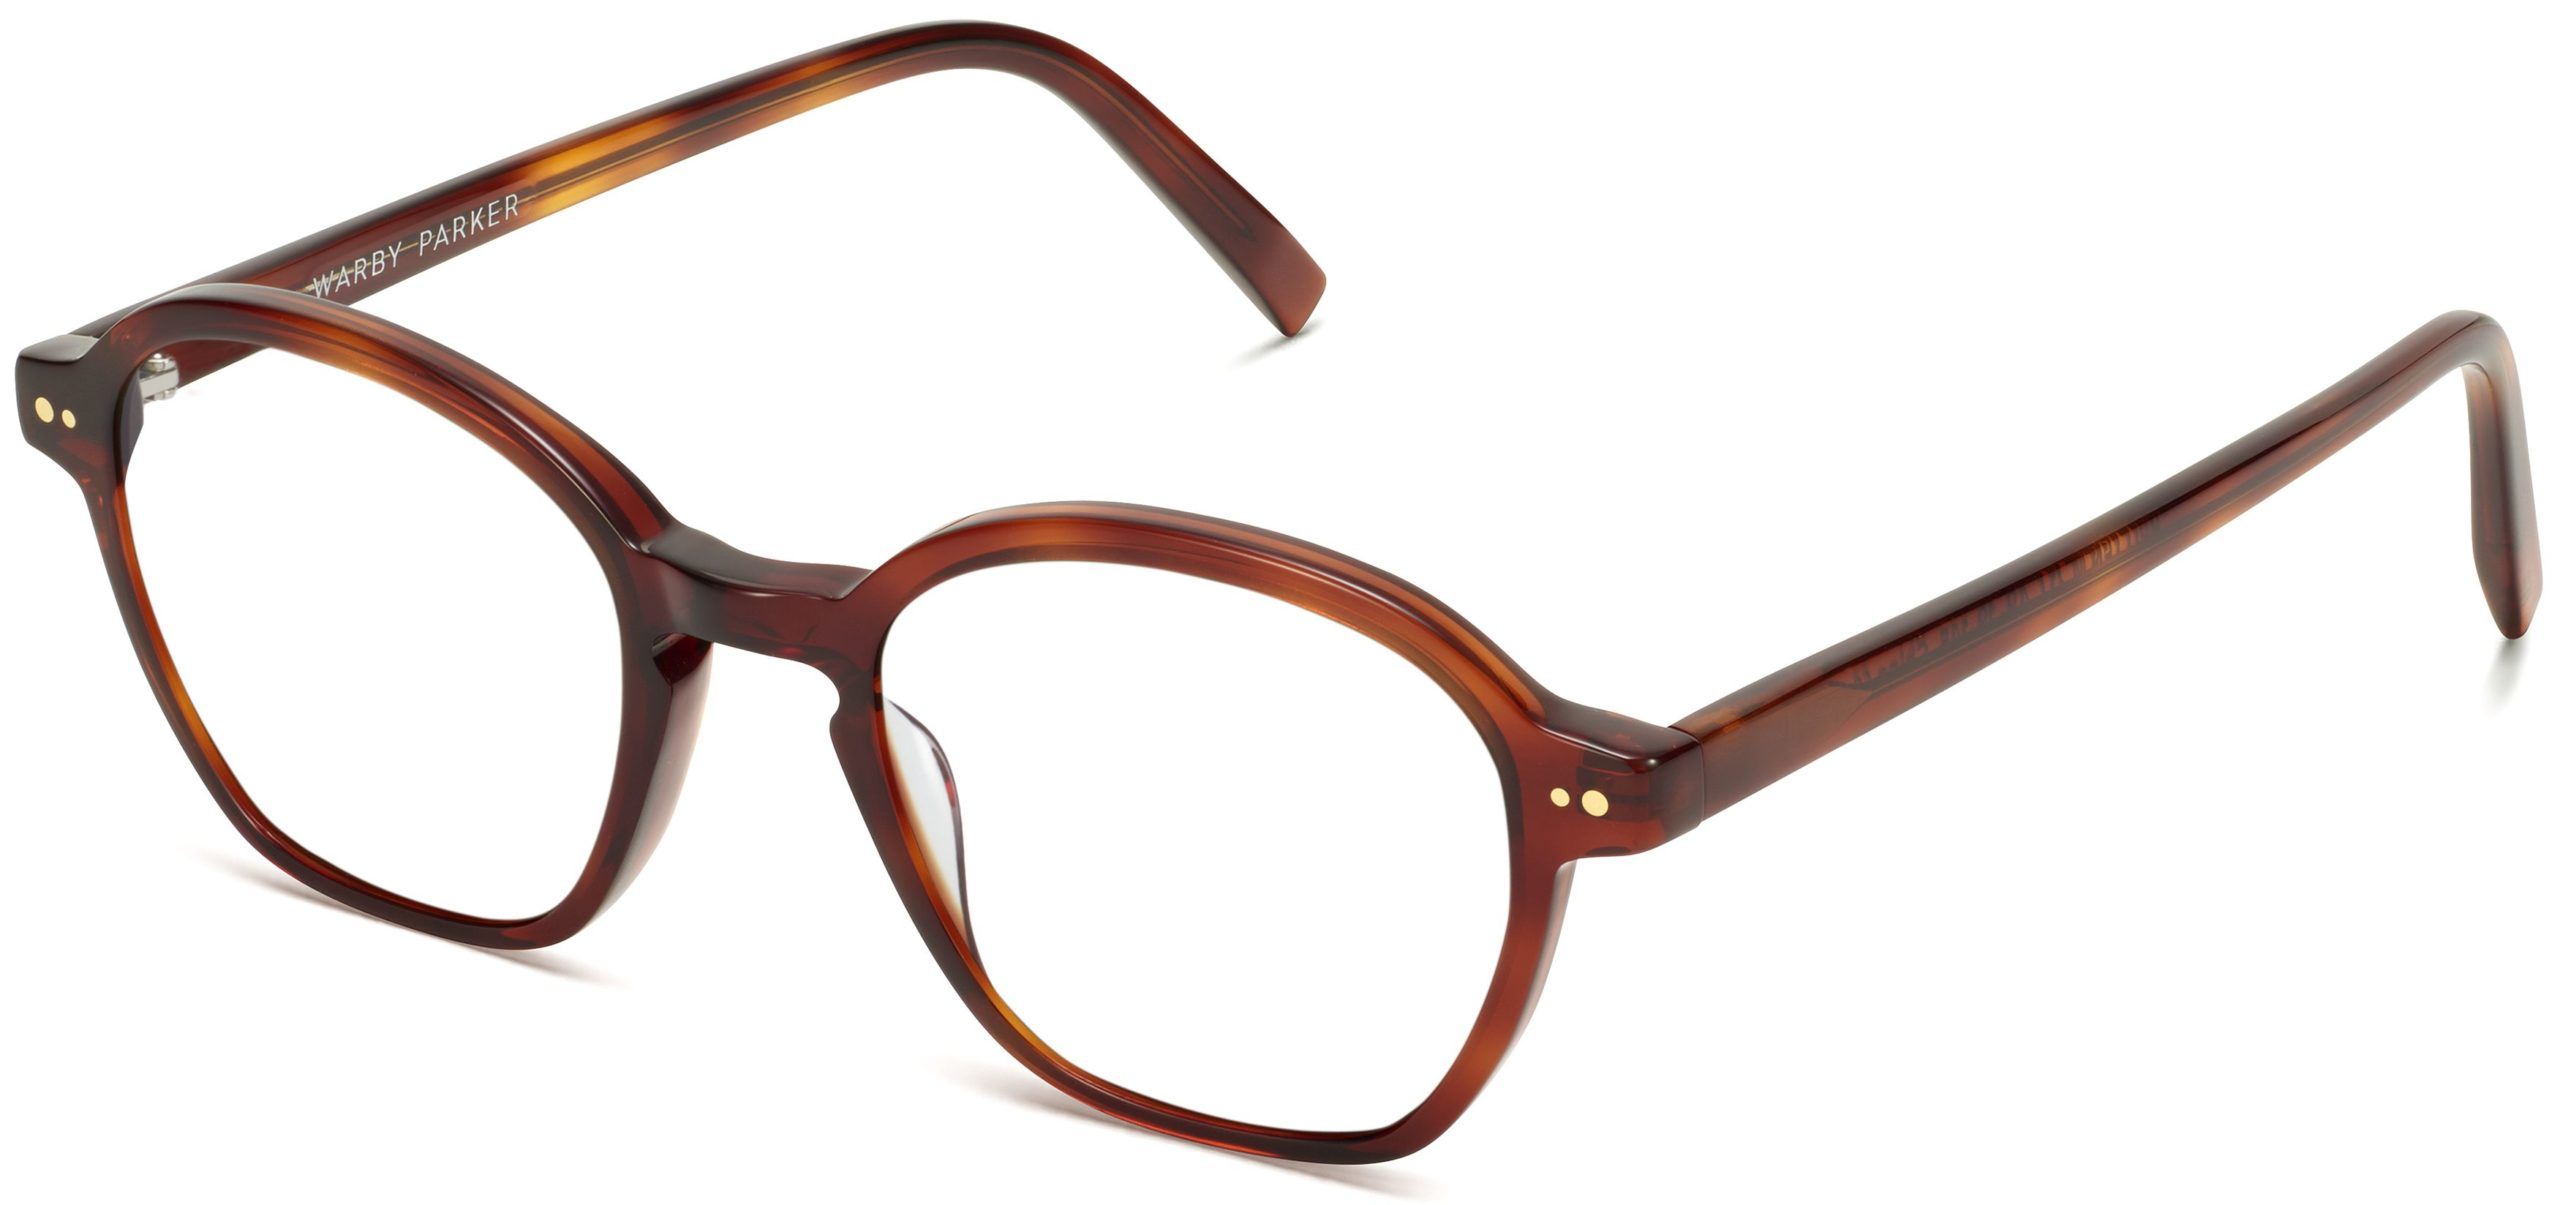 Angle View Image of Britten Eyeglasses Collection, by Warby Parker Brand, in Amber Tortoise Color